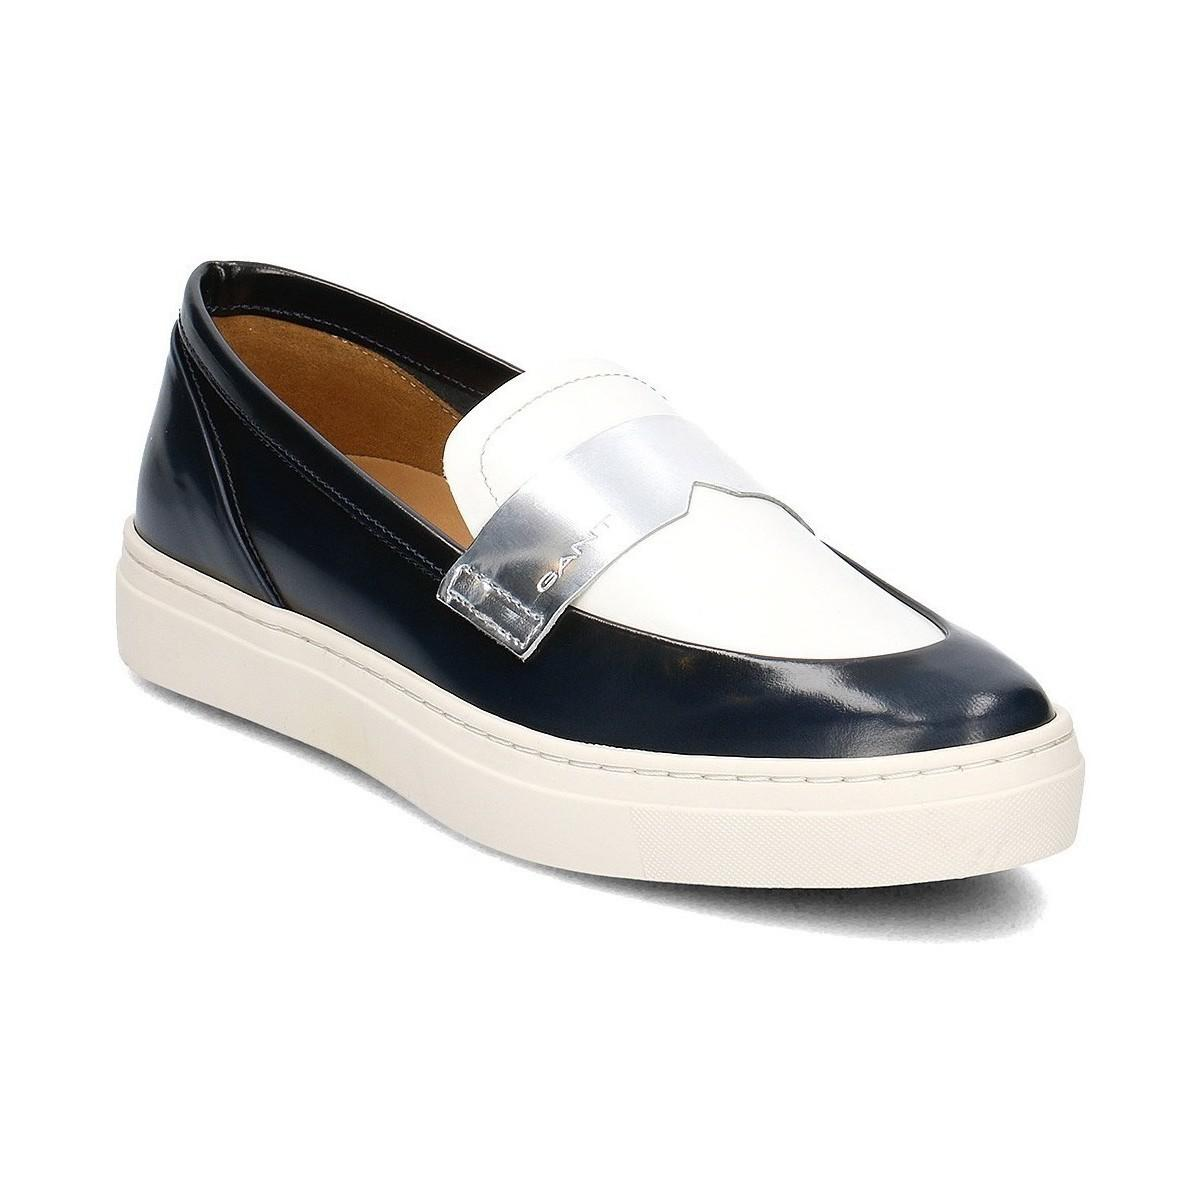 GANT Michelle women's Loafers / Casual Shoes in Outlet 100% Original Shop Offer Cheap Online zk7pu4